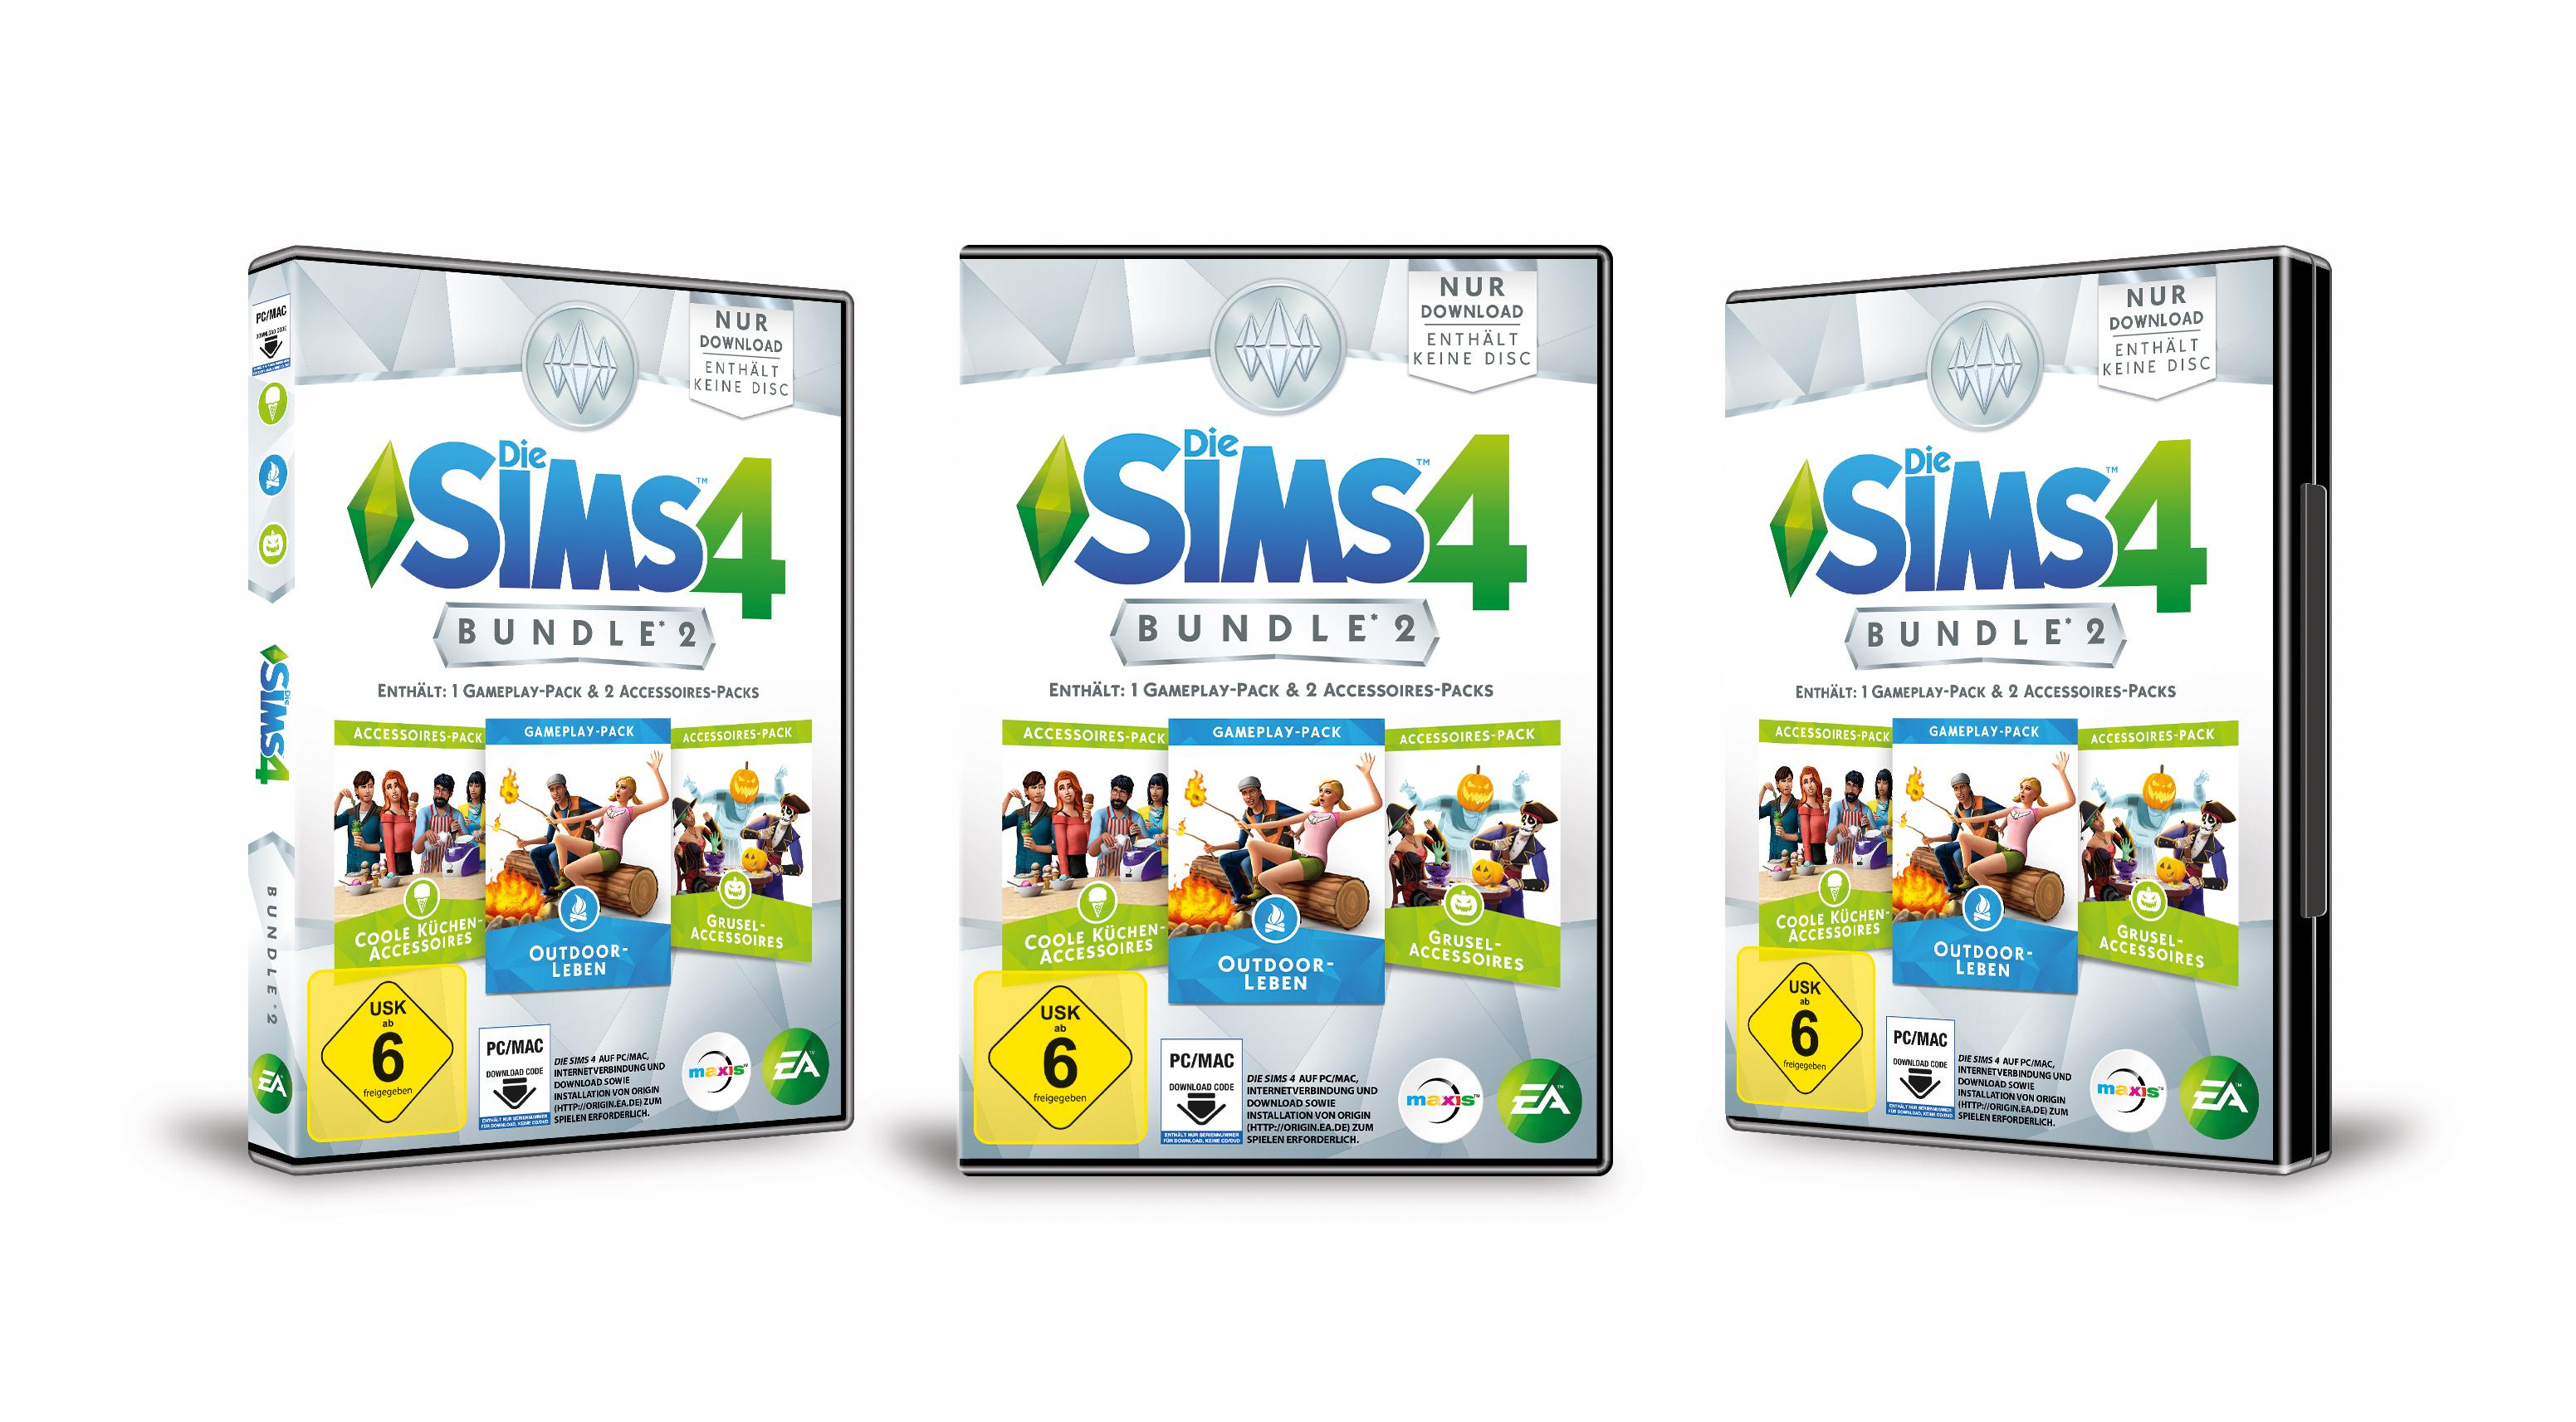 sims 3 pc apps directories